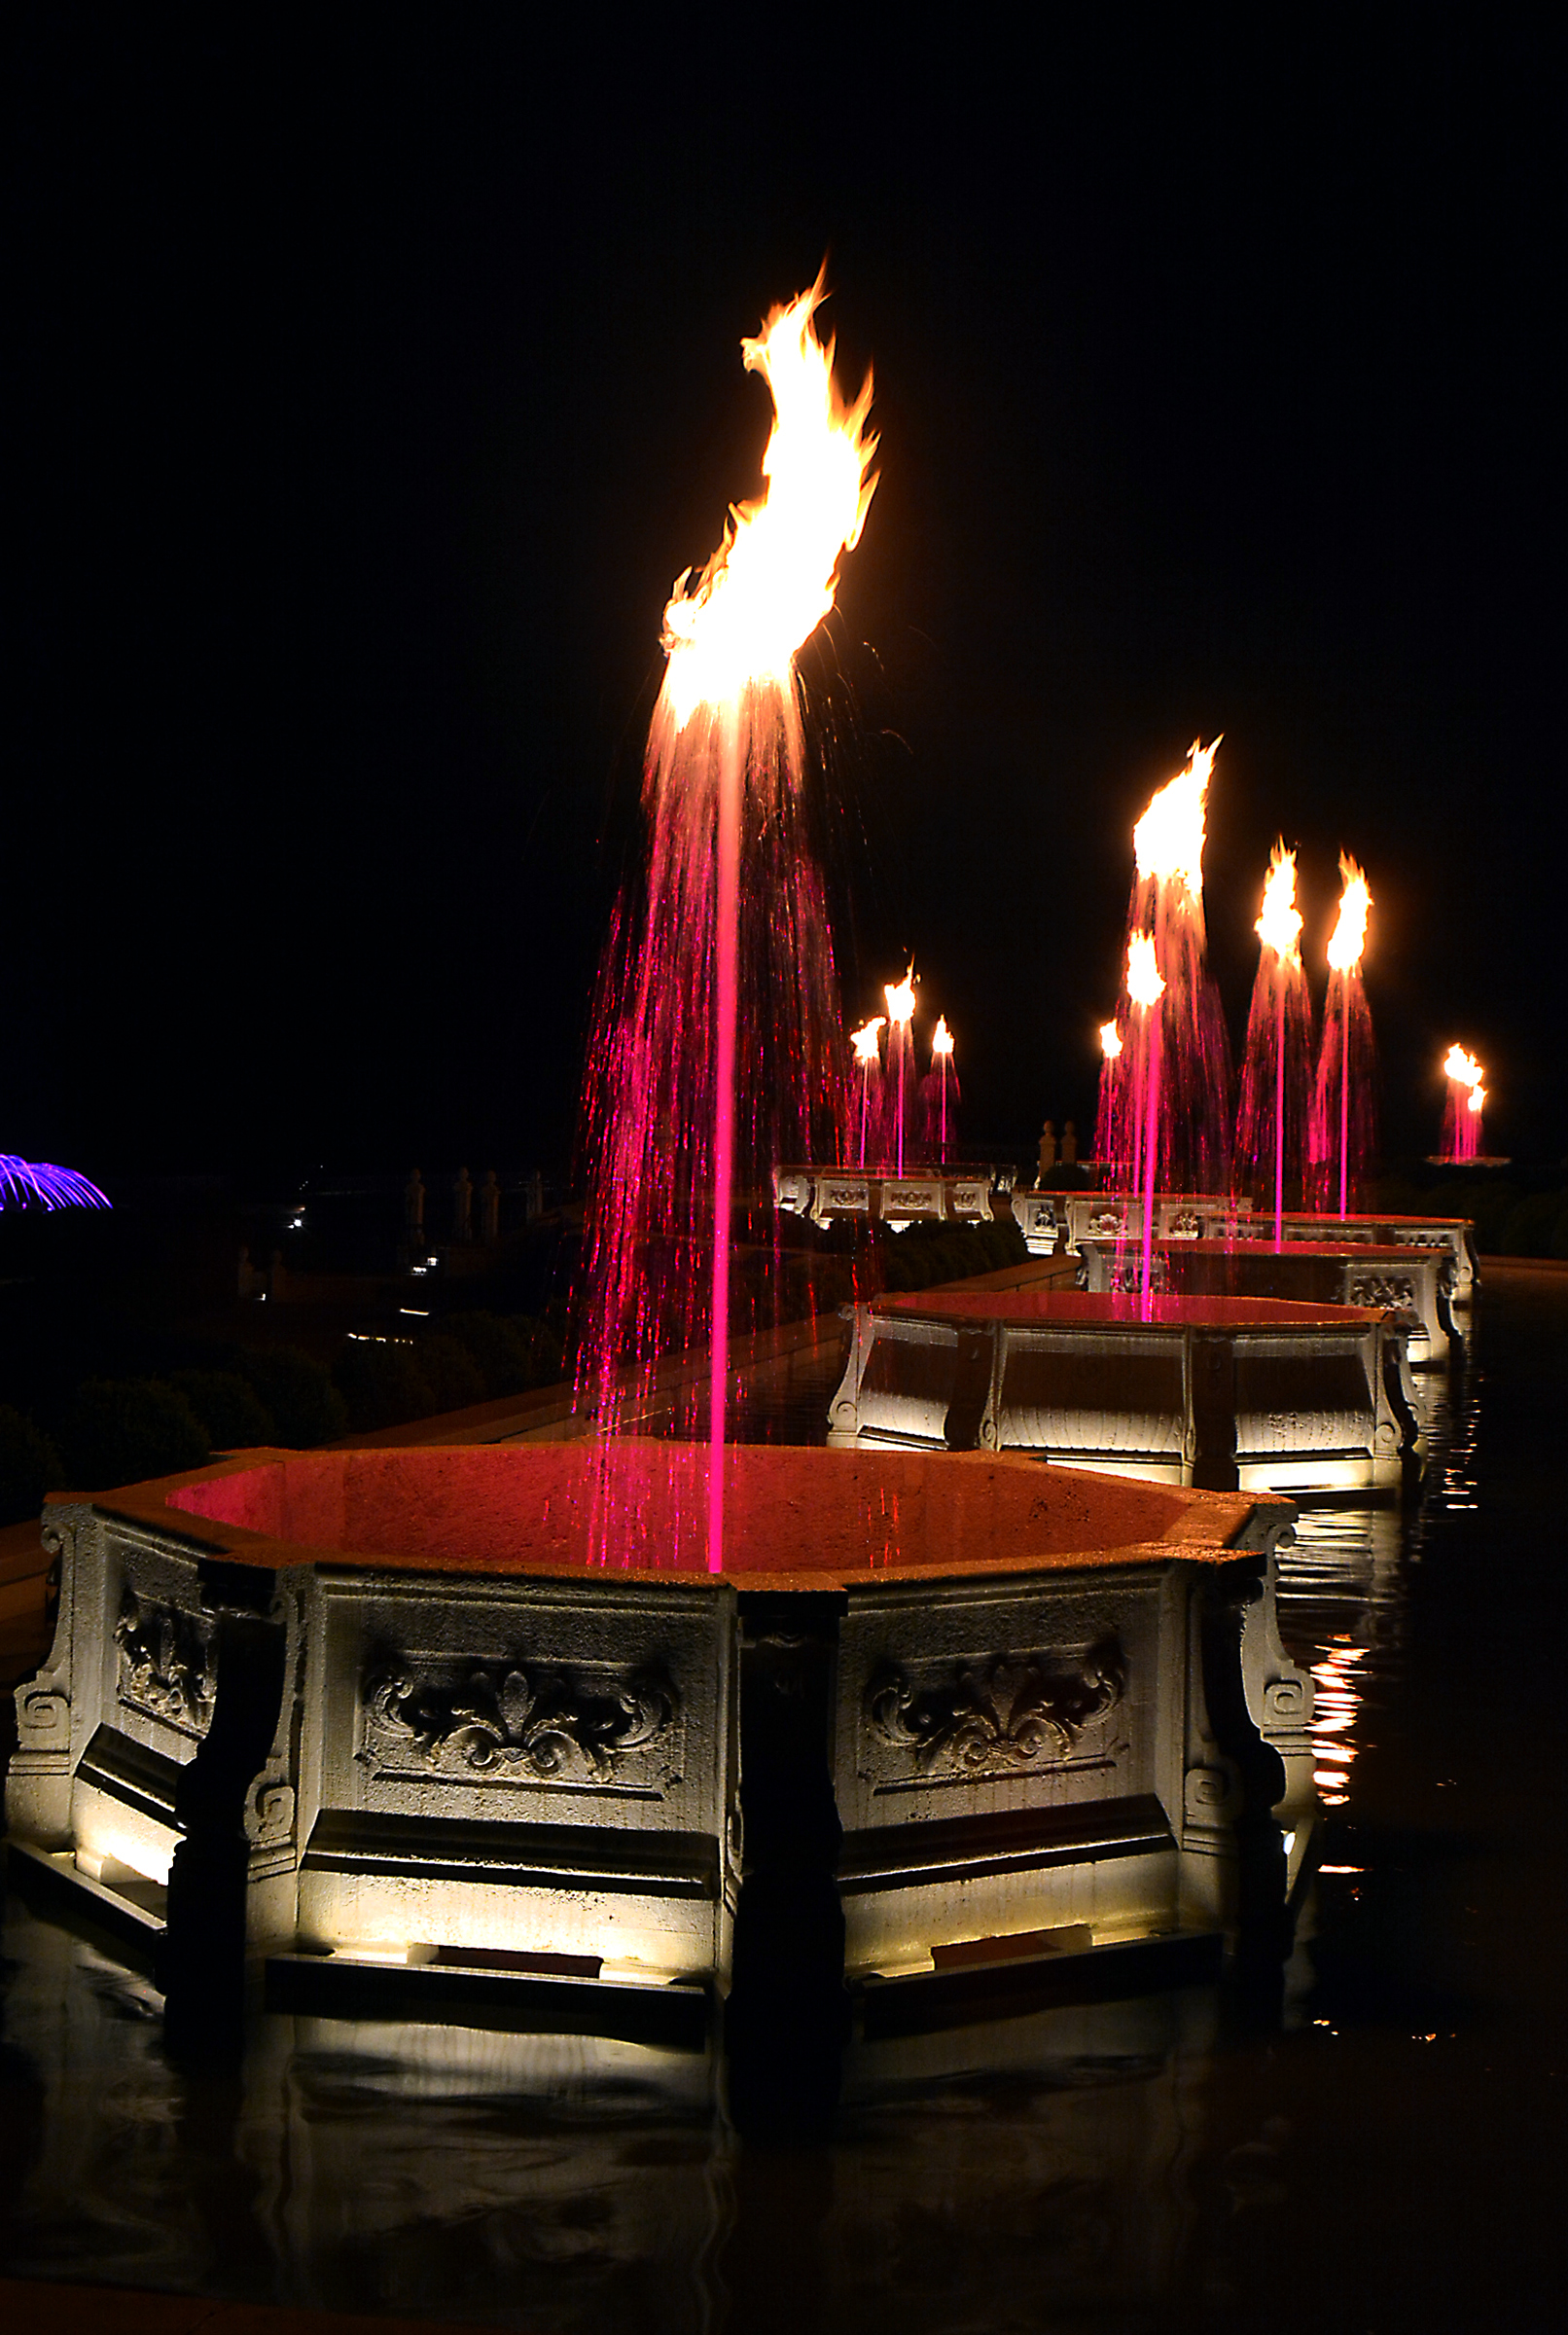 The Spectacular New Illuminated Fountains With Flames Choreographed To  Music At Longwood Gardens Mark A Dramatic Moment In The Longwood  Restoration.